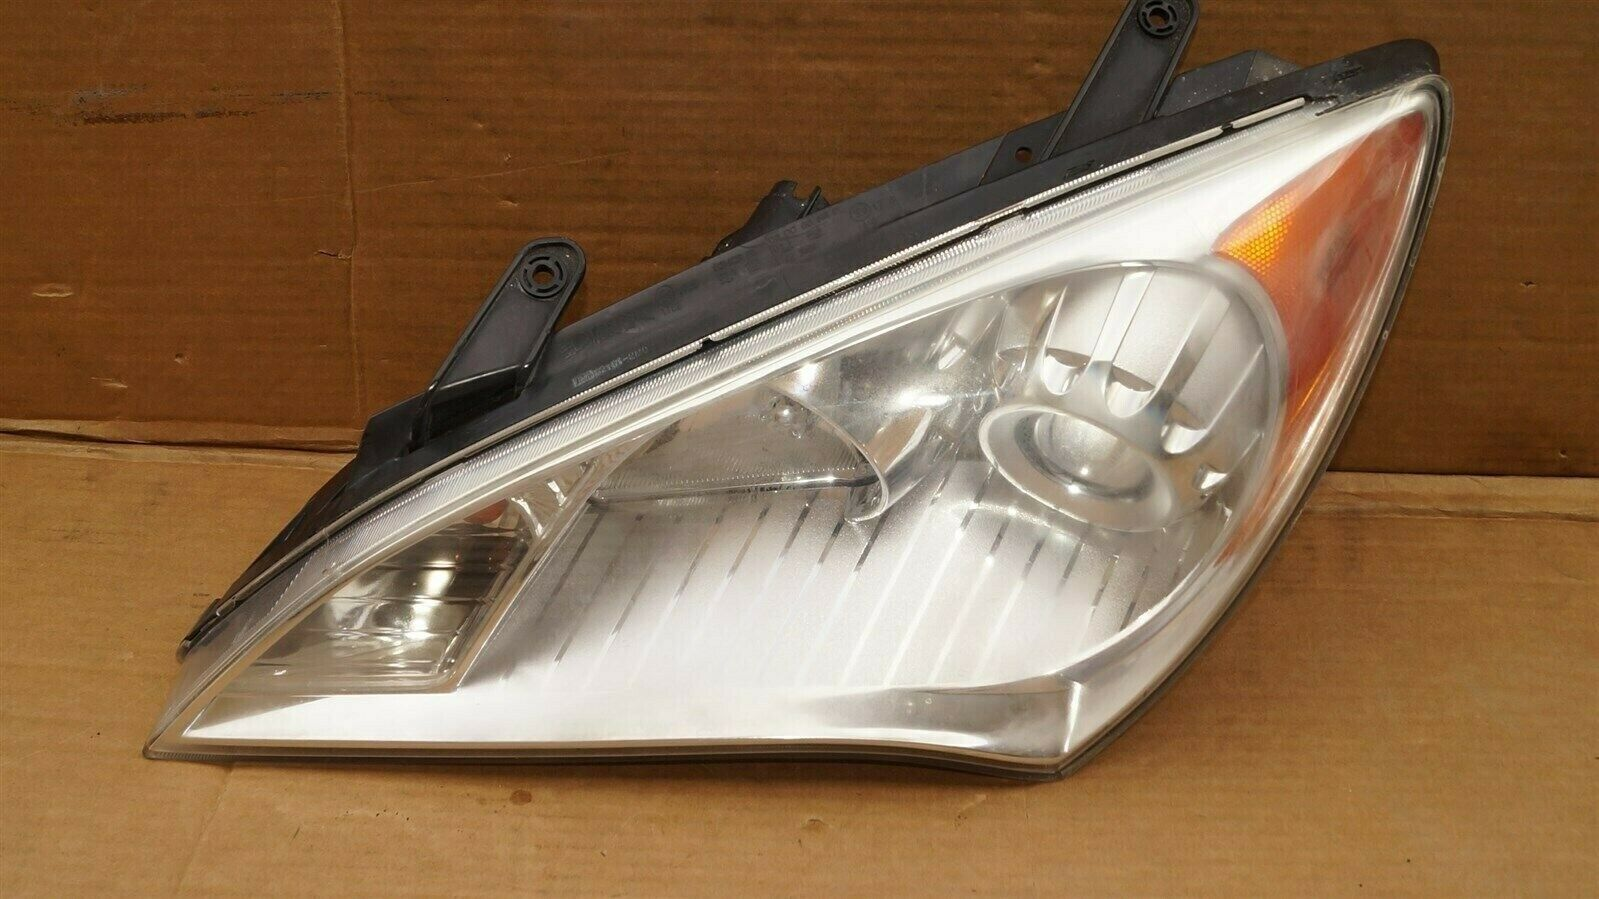 10-12 Hyundai Genesis Coupe Headlight Head Light Halogen Driver Left LH